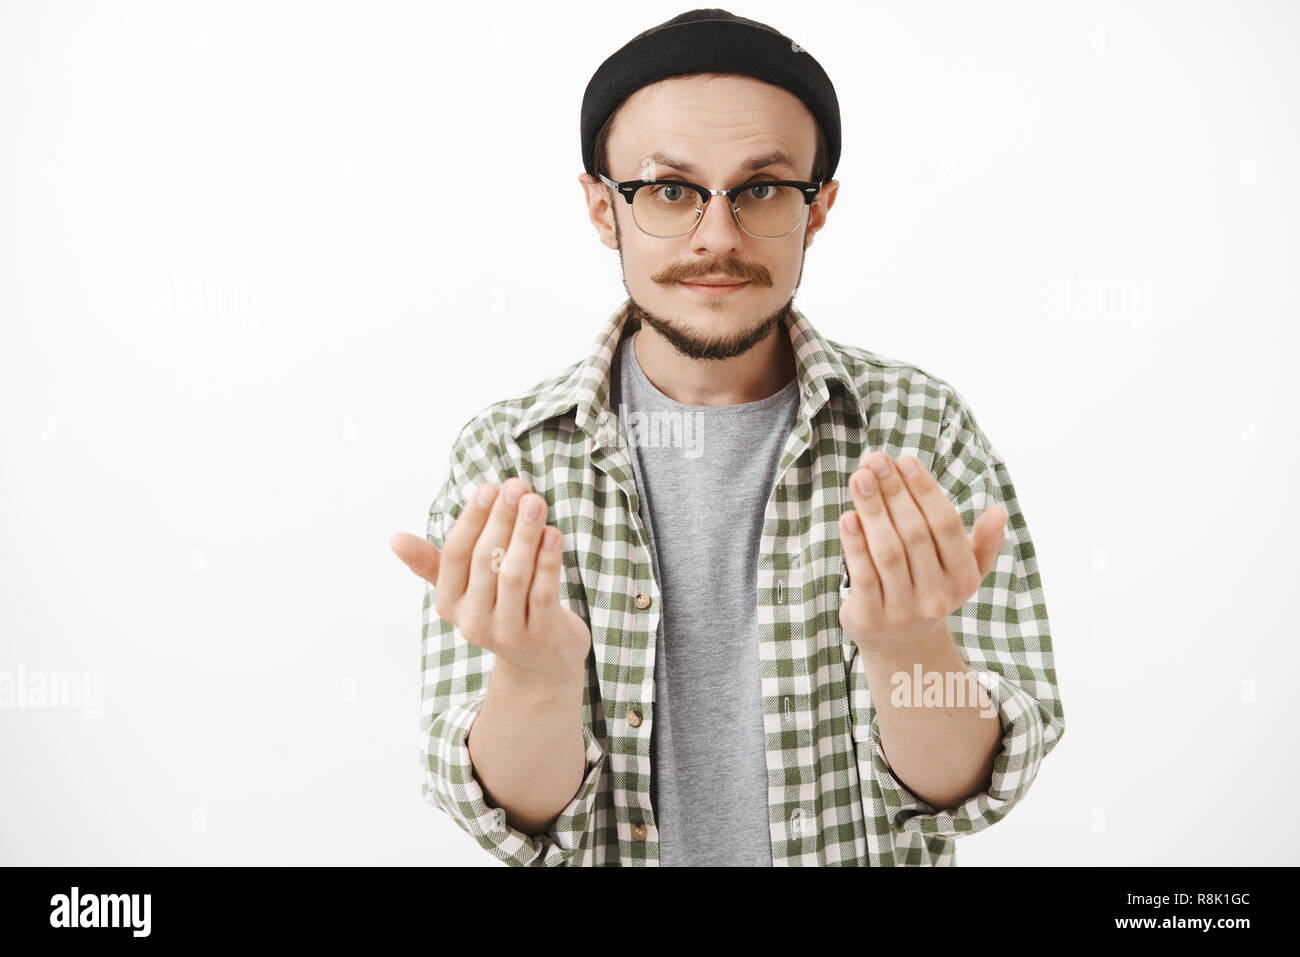 Come on closer. Serious-looking skilfful artistic bearded guy in glasses and black beanie raising palms near body asking approach to him or give something wanting hold item in hands over gray wall - Stock Image